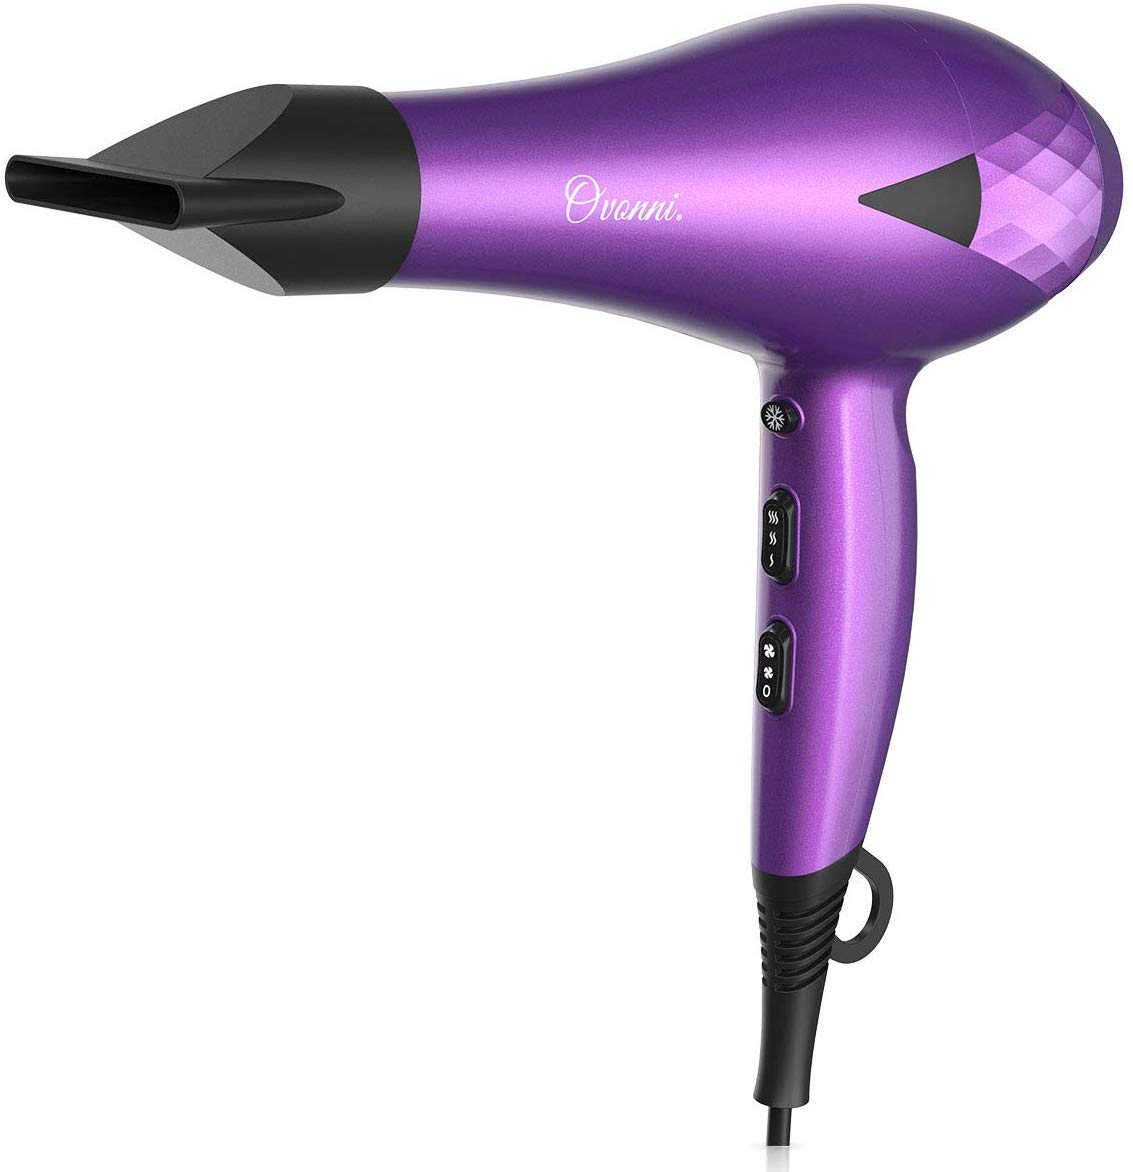 Ovonni Ionic Hair Dryer with Bonnet Hood, Pro 2000W Negative Ion Ceramic Tourmaline AC Motor Blow Dryer